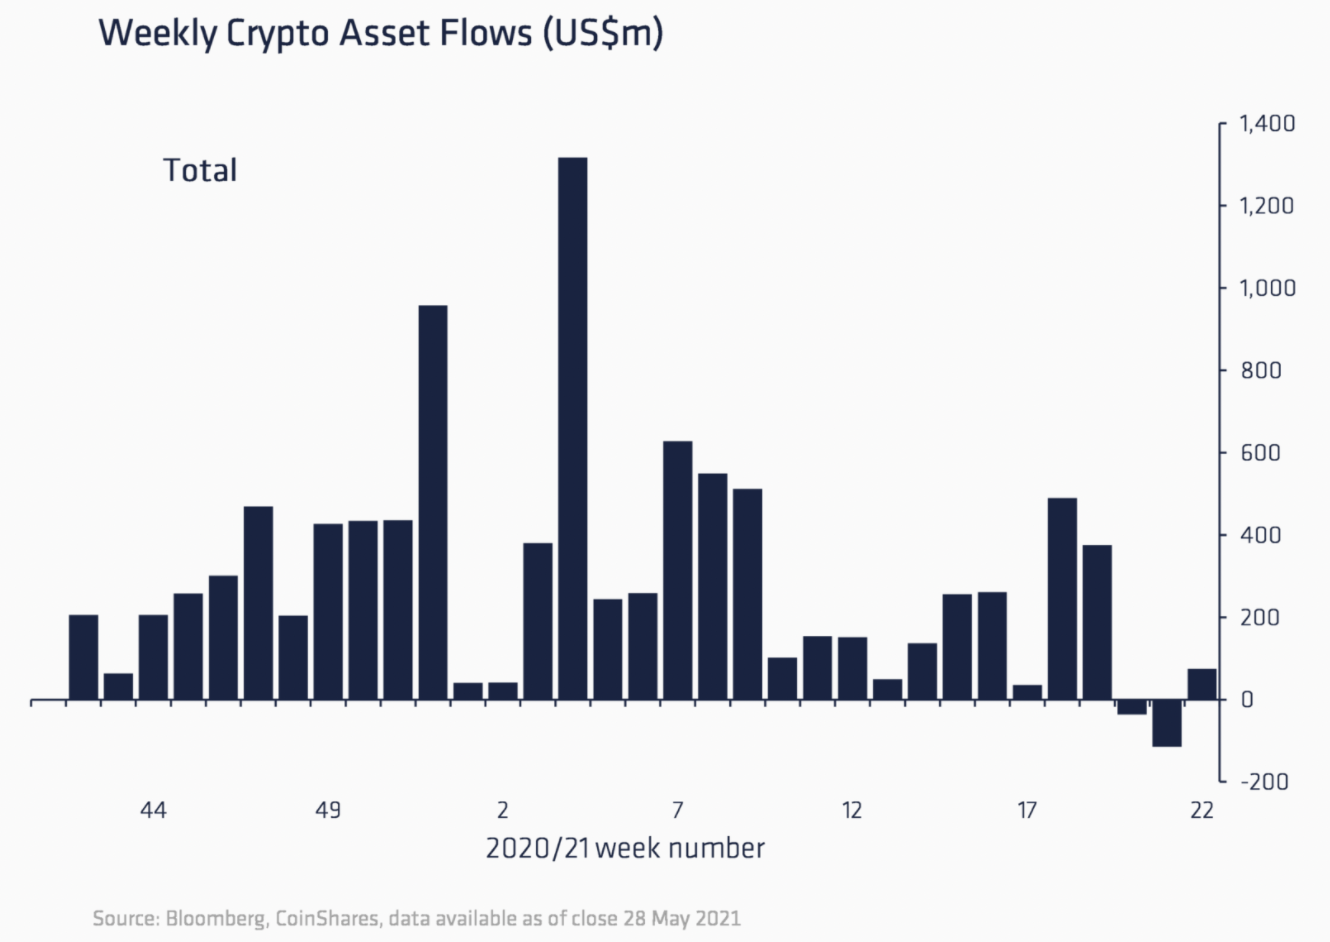 Inflows into Digital Asset Funds Recover Slightly as Demand Rises for Altcoin Products